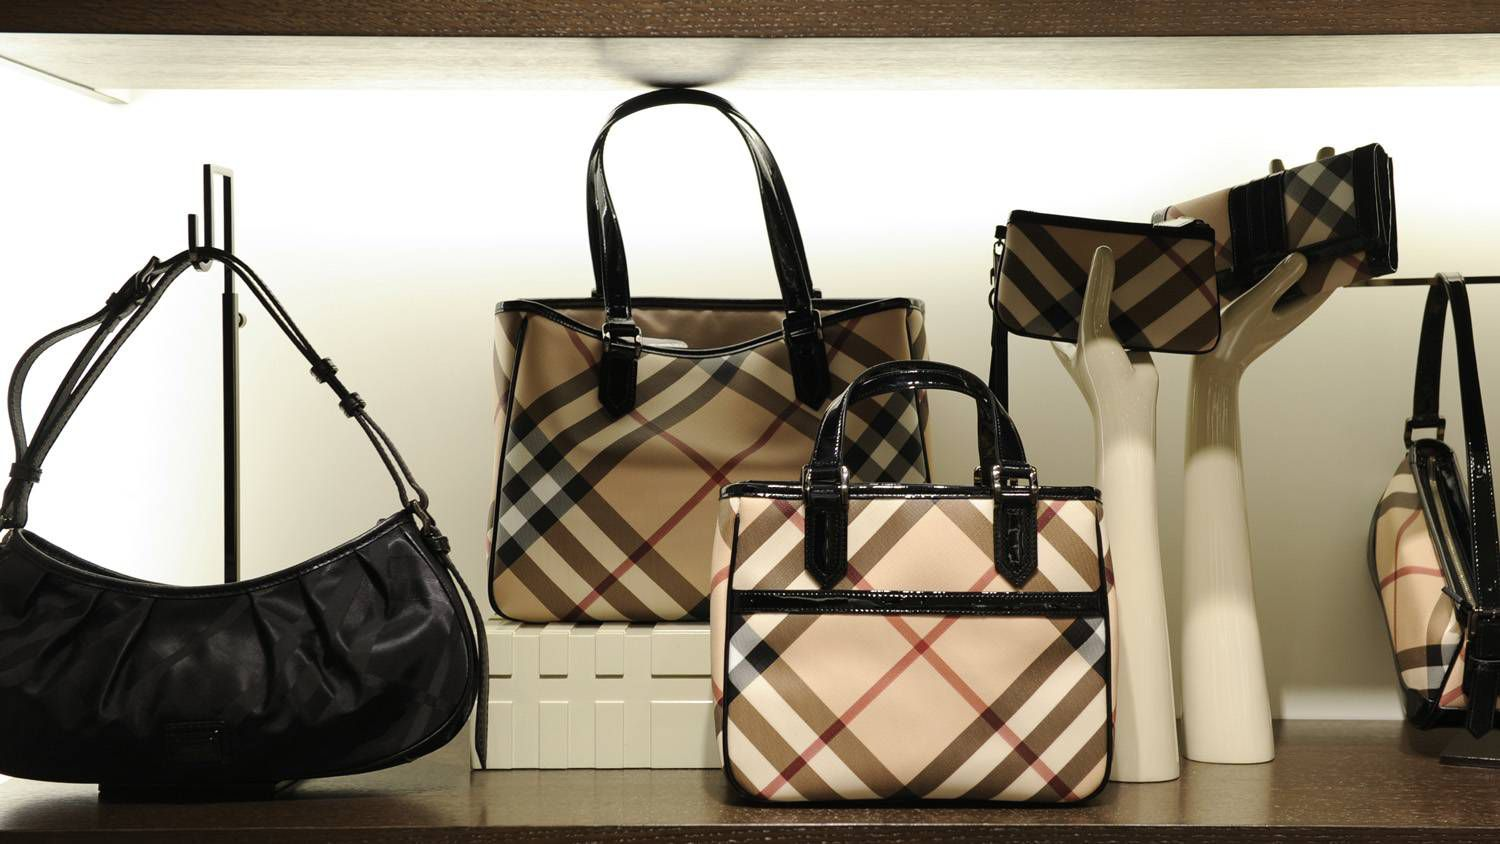 540ebf6fd299 How Burberry mended its checkered reputation - The Globe and Mail